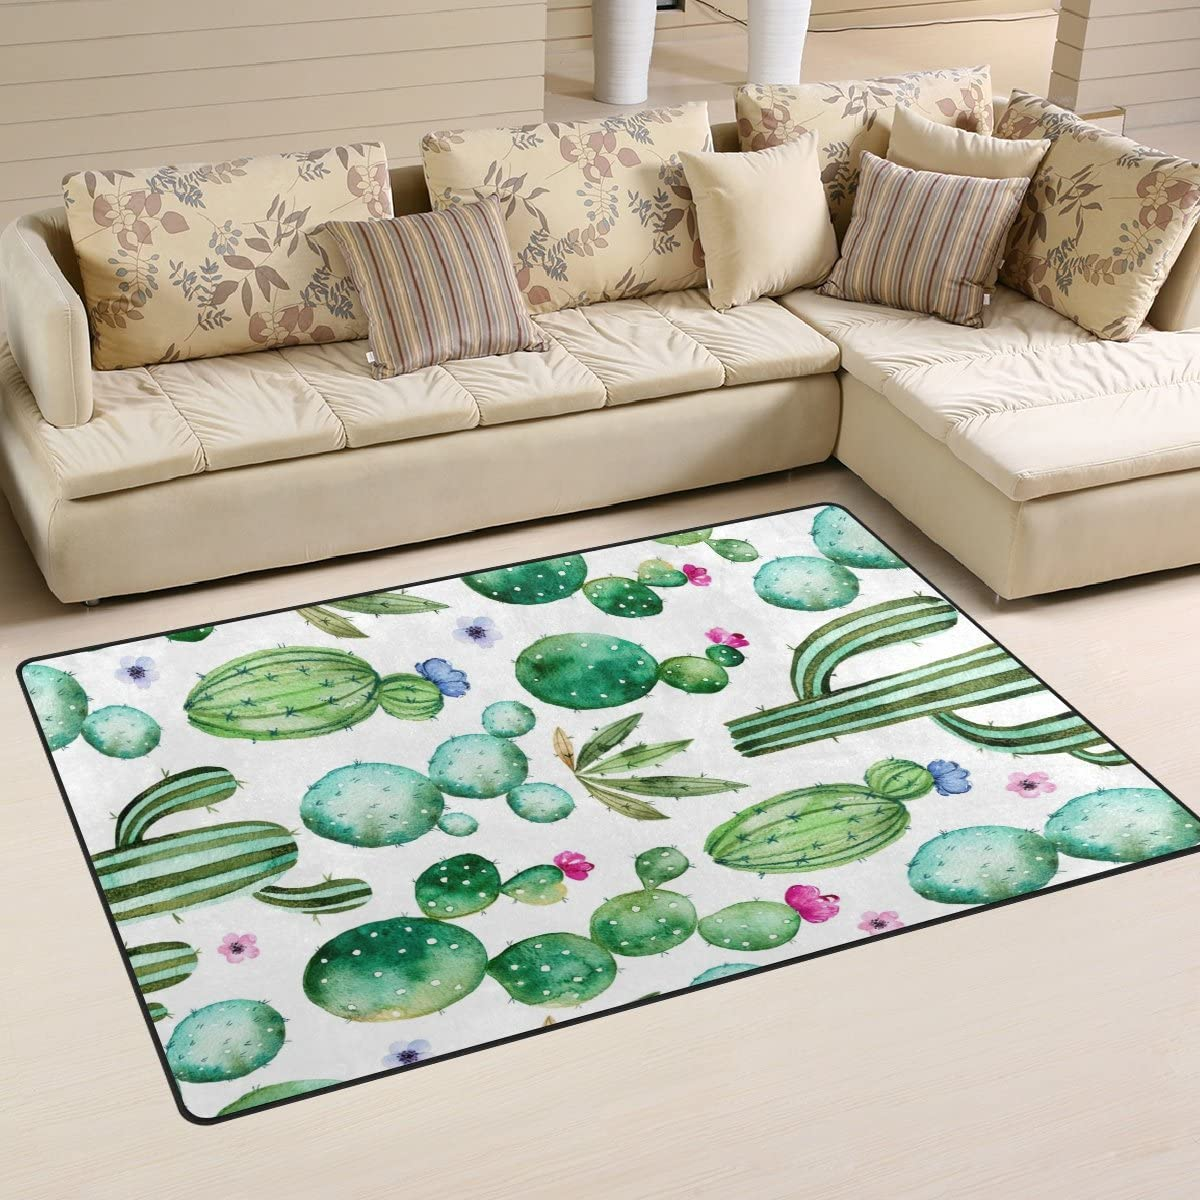 WOZO Summer Watercolor Cactus Tropical Area Rug Rugs Non-Slip Floor Mat Doormats for Living Room Bedroom 60 x 39 inches